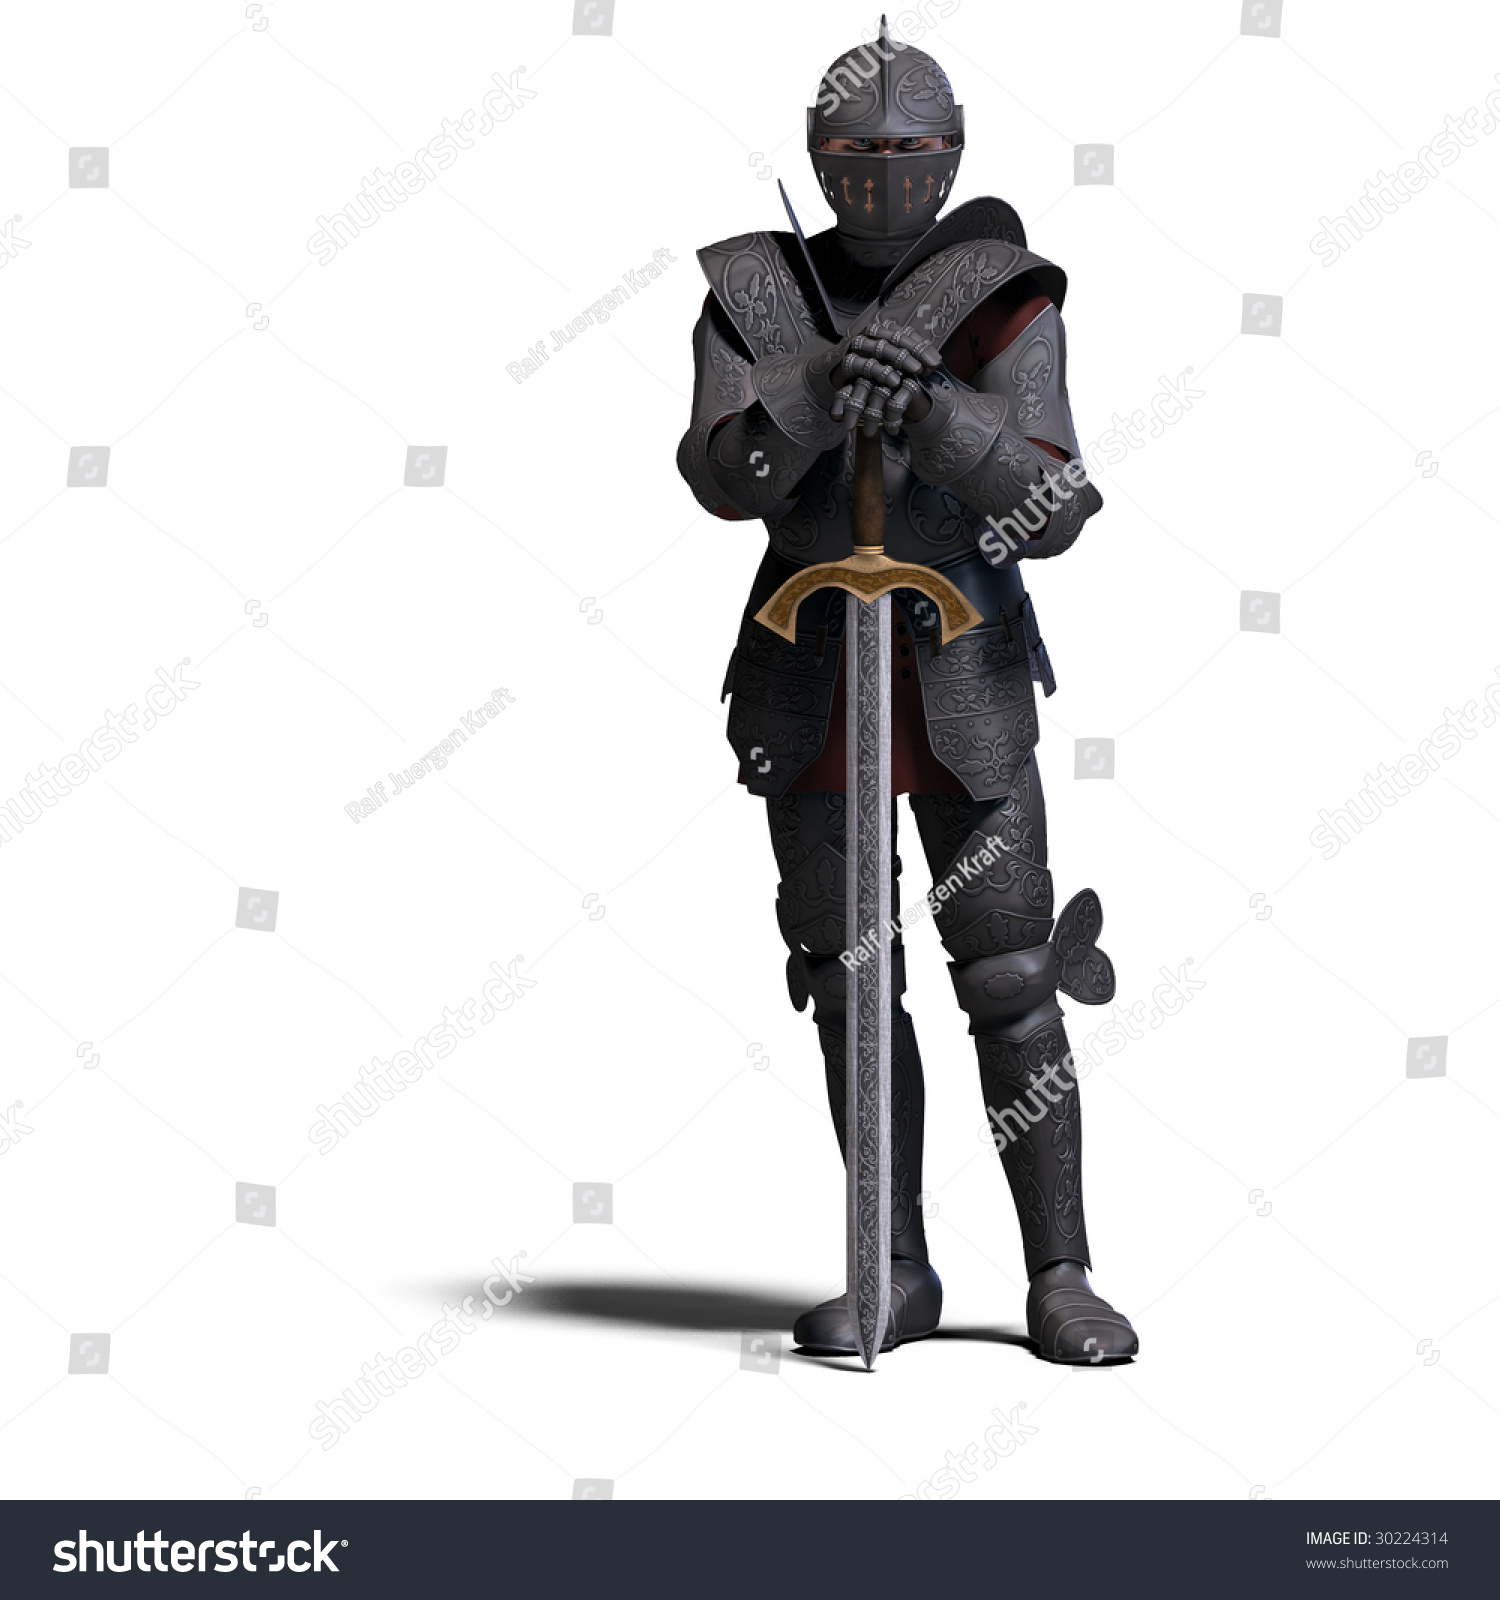 Lightning Black Knight Halberd Stock Photo The Dark Knight With Sword With